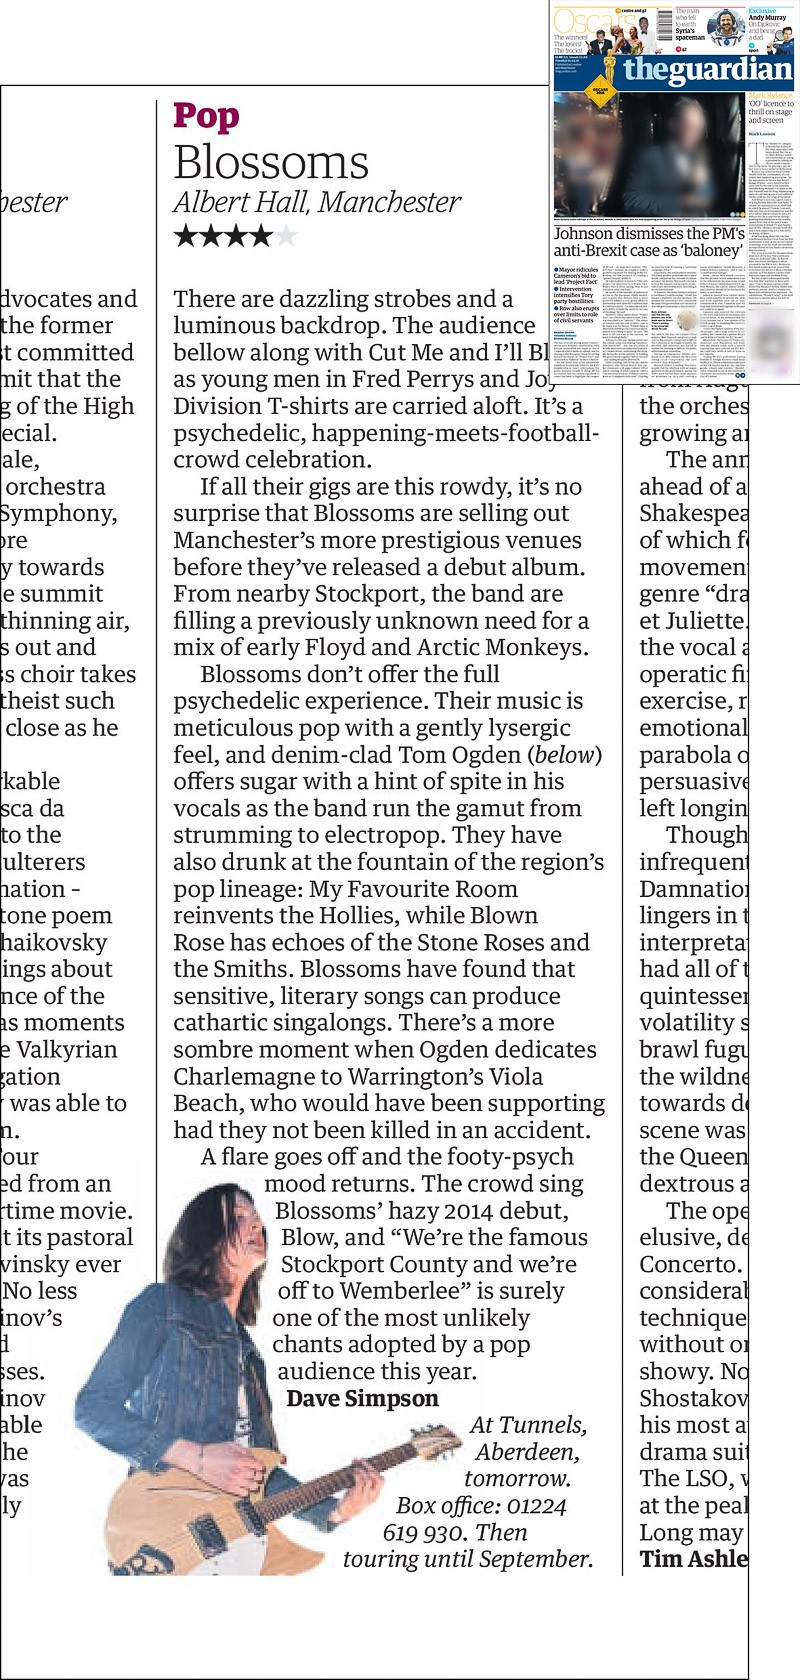 Image usage - Guardian newspaper 1 March 2016 - Blossoms live at Scala 25 February 2016